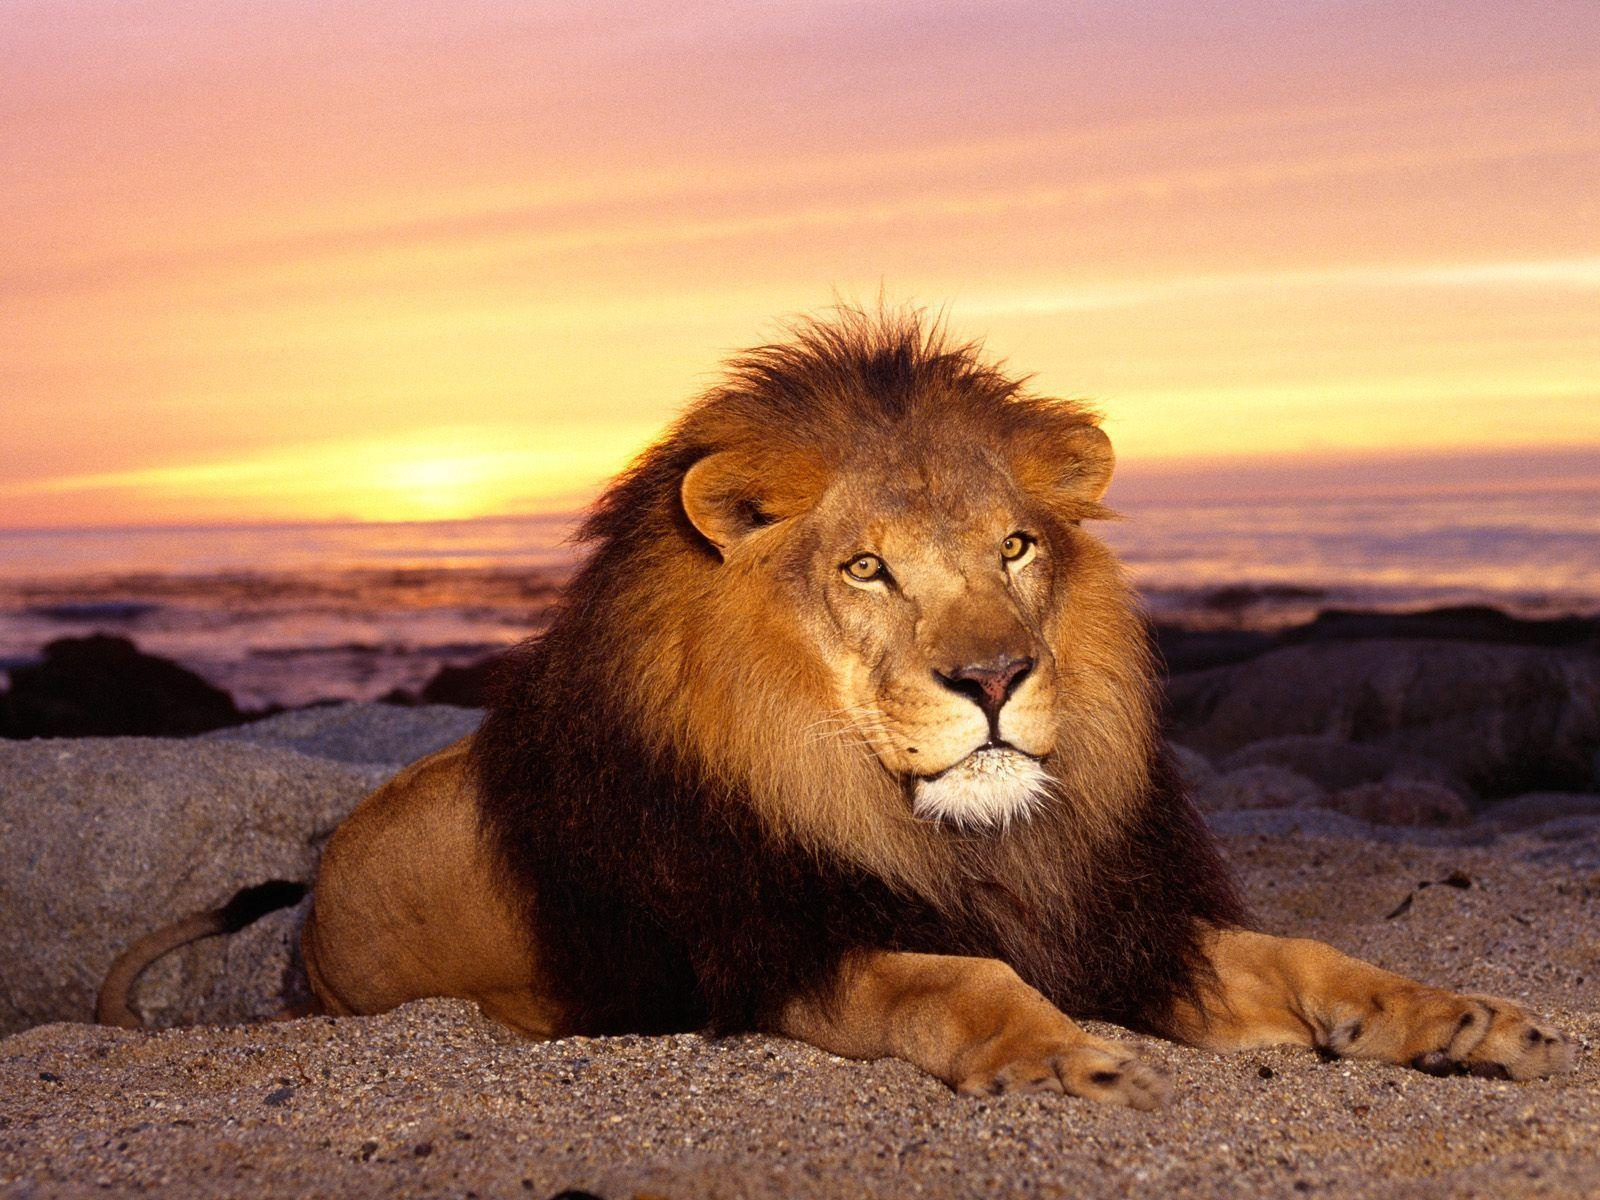 Lion Animal Wallpaper Desktop Pictures 2469 Full HD Wallpaper ...